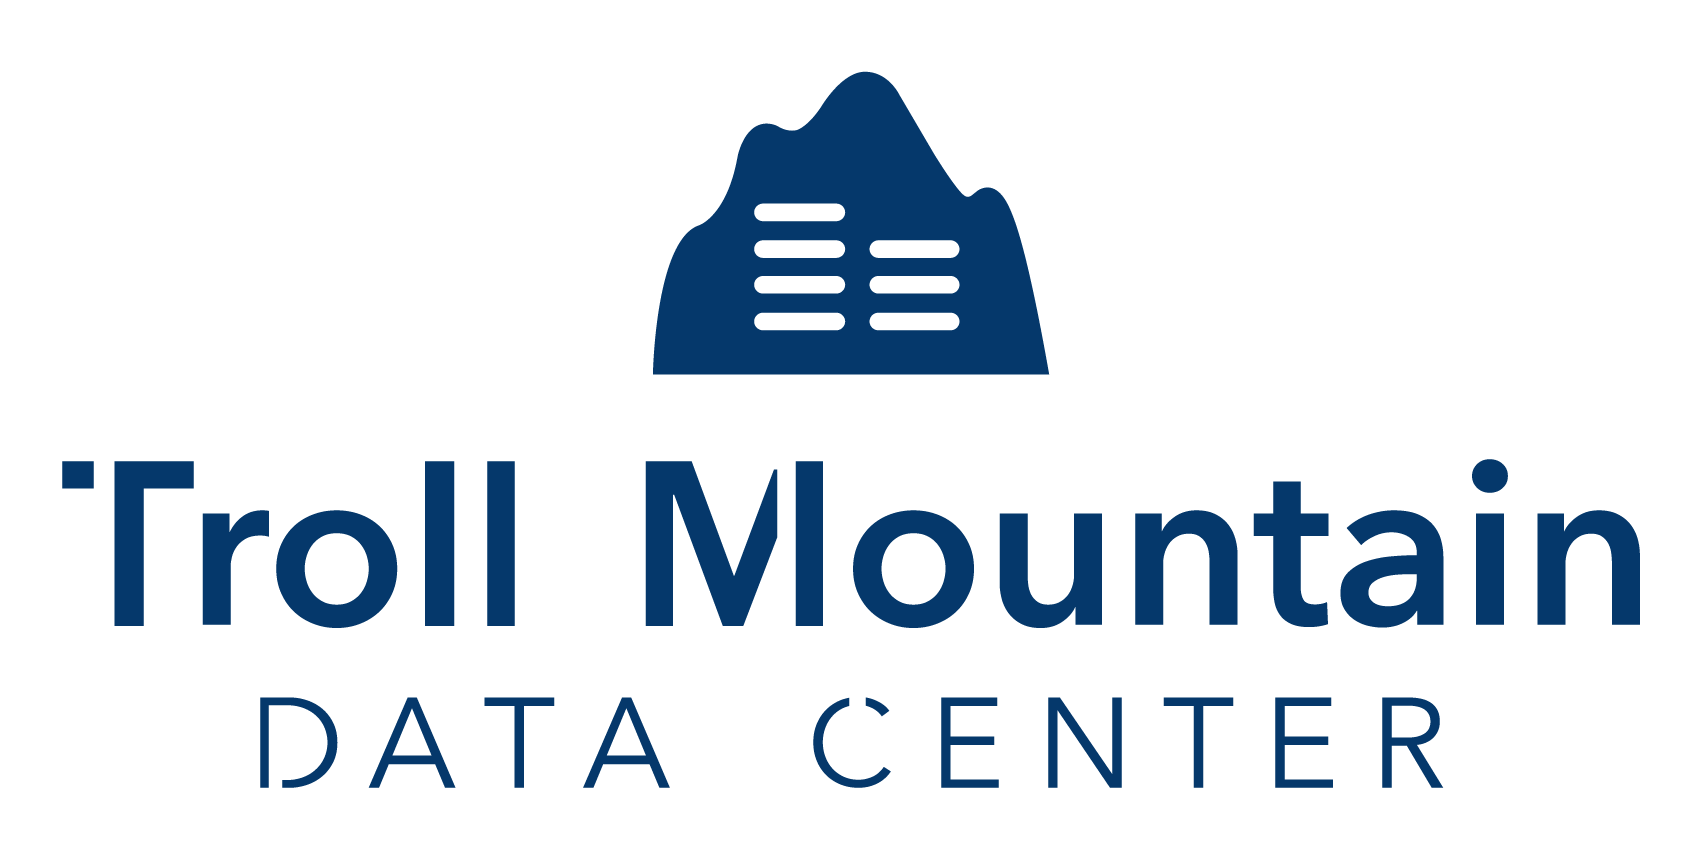 Troll Mountain Data Center